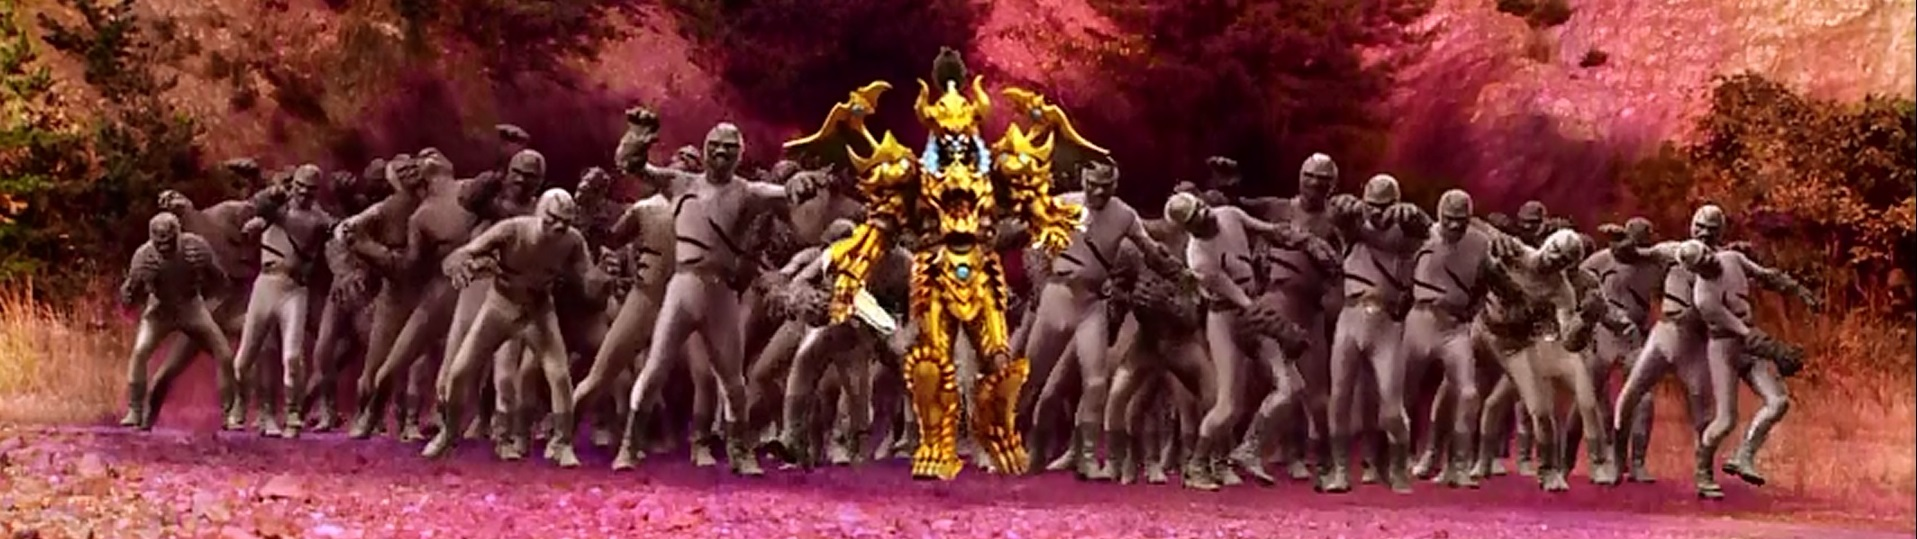 dino charge 04